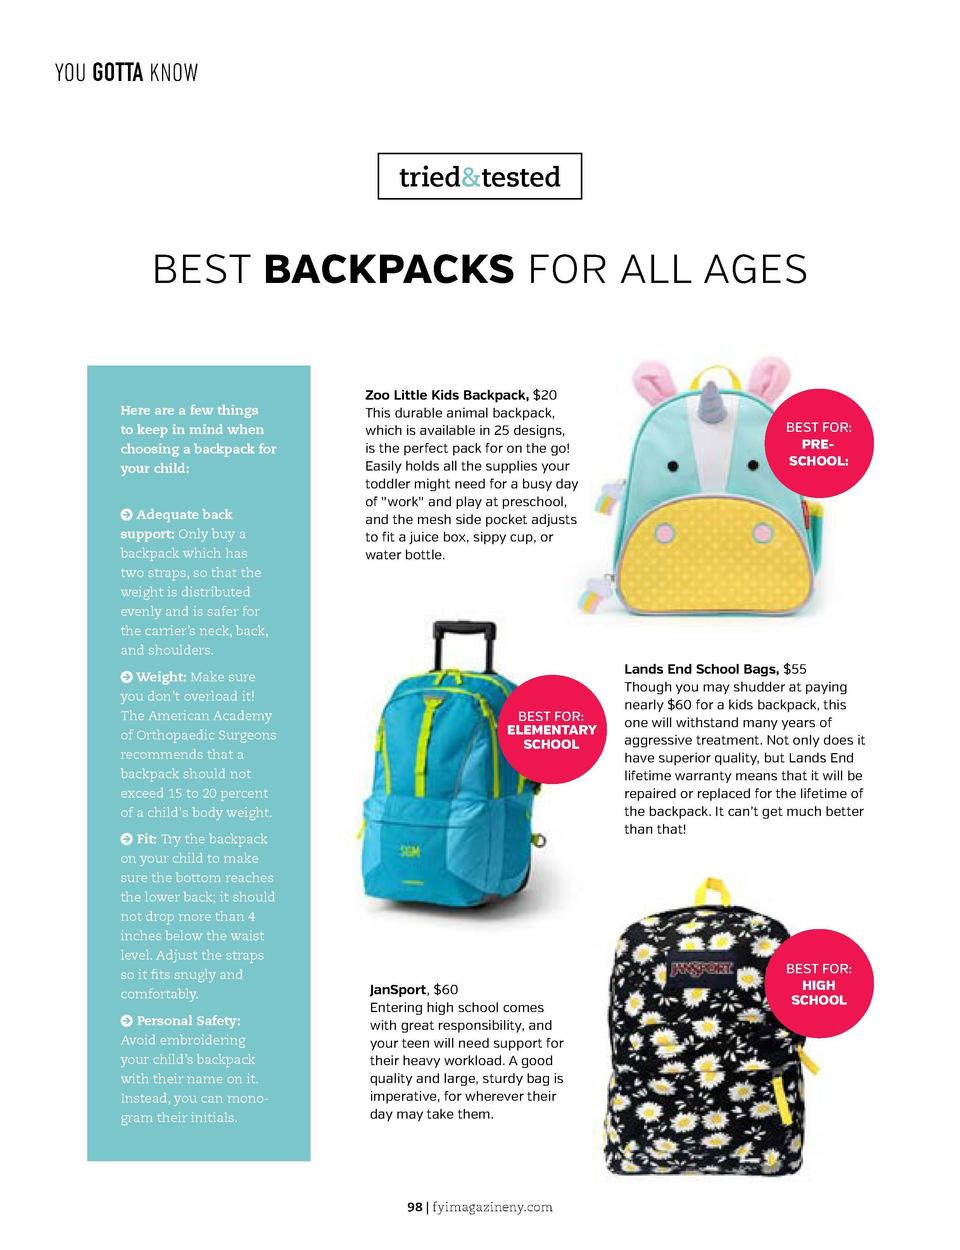 YOU GOTTA KNOW  YOU GOTTA KNOW  tried tested  BEST BACKPACKS FOR ALL AGES  Here are a few things to keep in mind when choo...